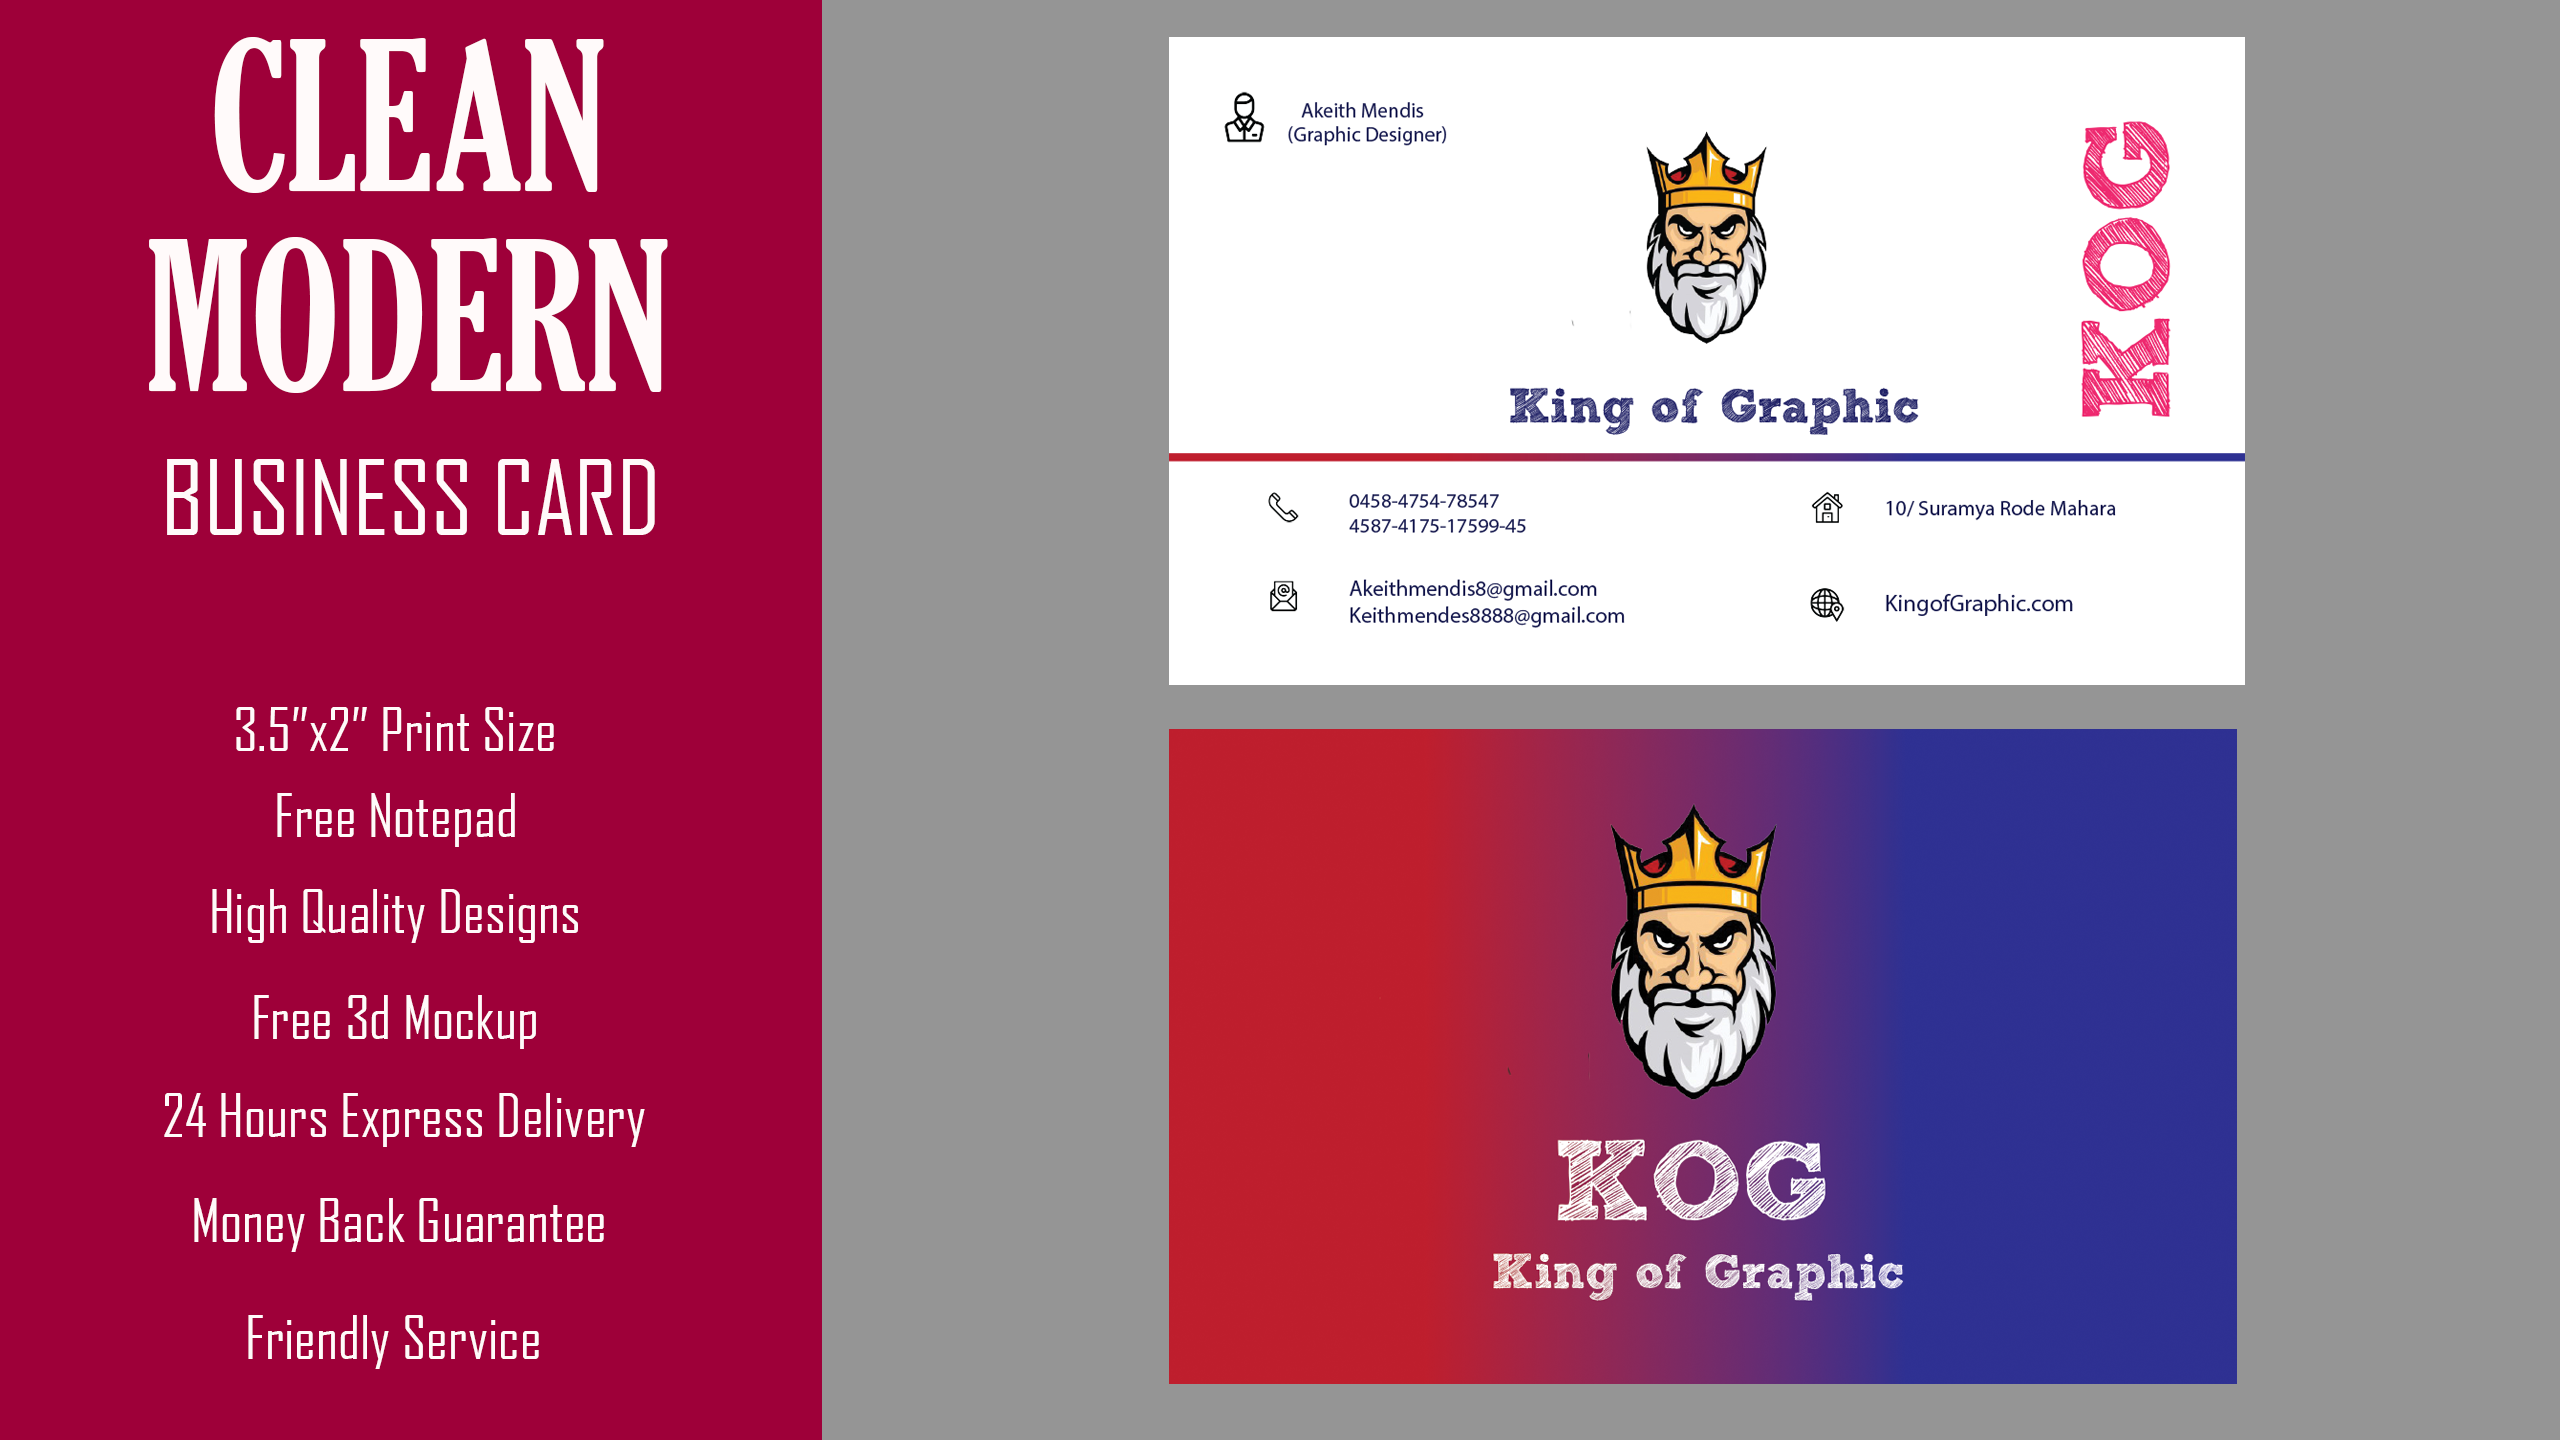 Design 2 clean business card within 24 hrs by Kingofgraphic88